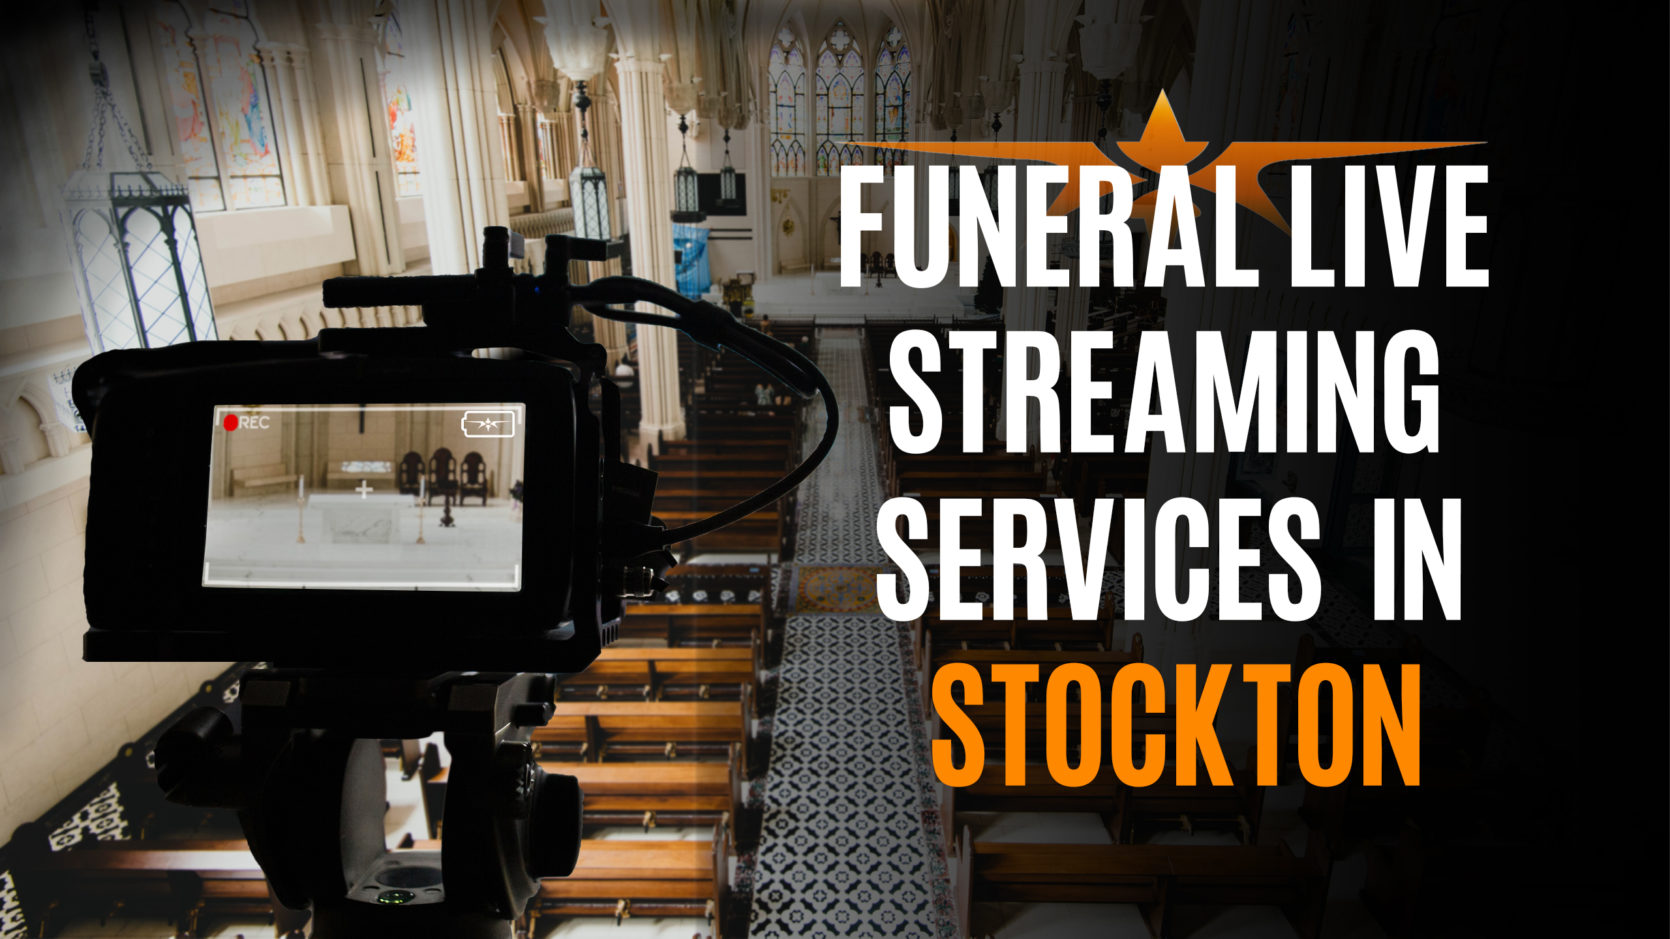 Funeral Live Streaming Services in Stockton